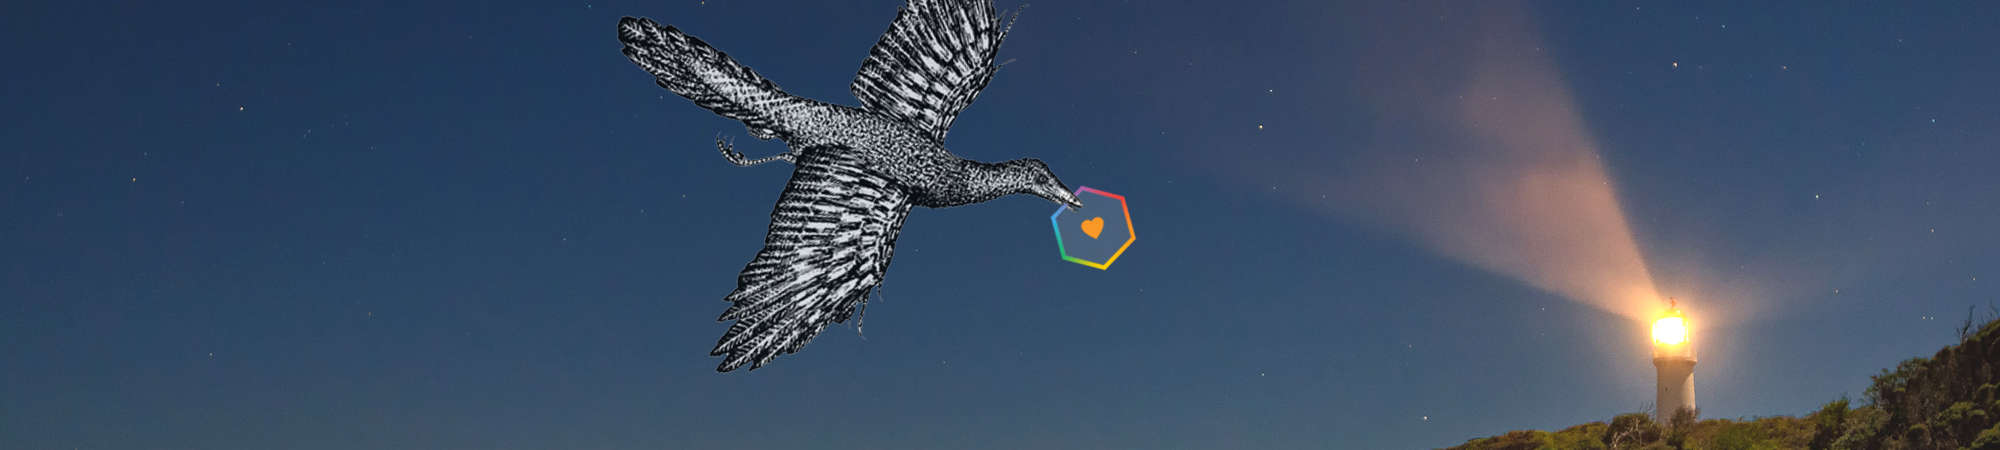 A bird in the sky carrying OnSpotStorys logo to illustrate content creation services e.g. film